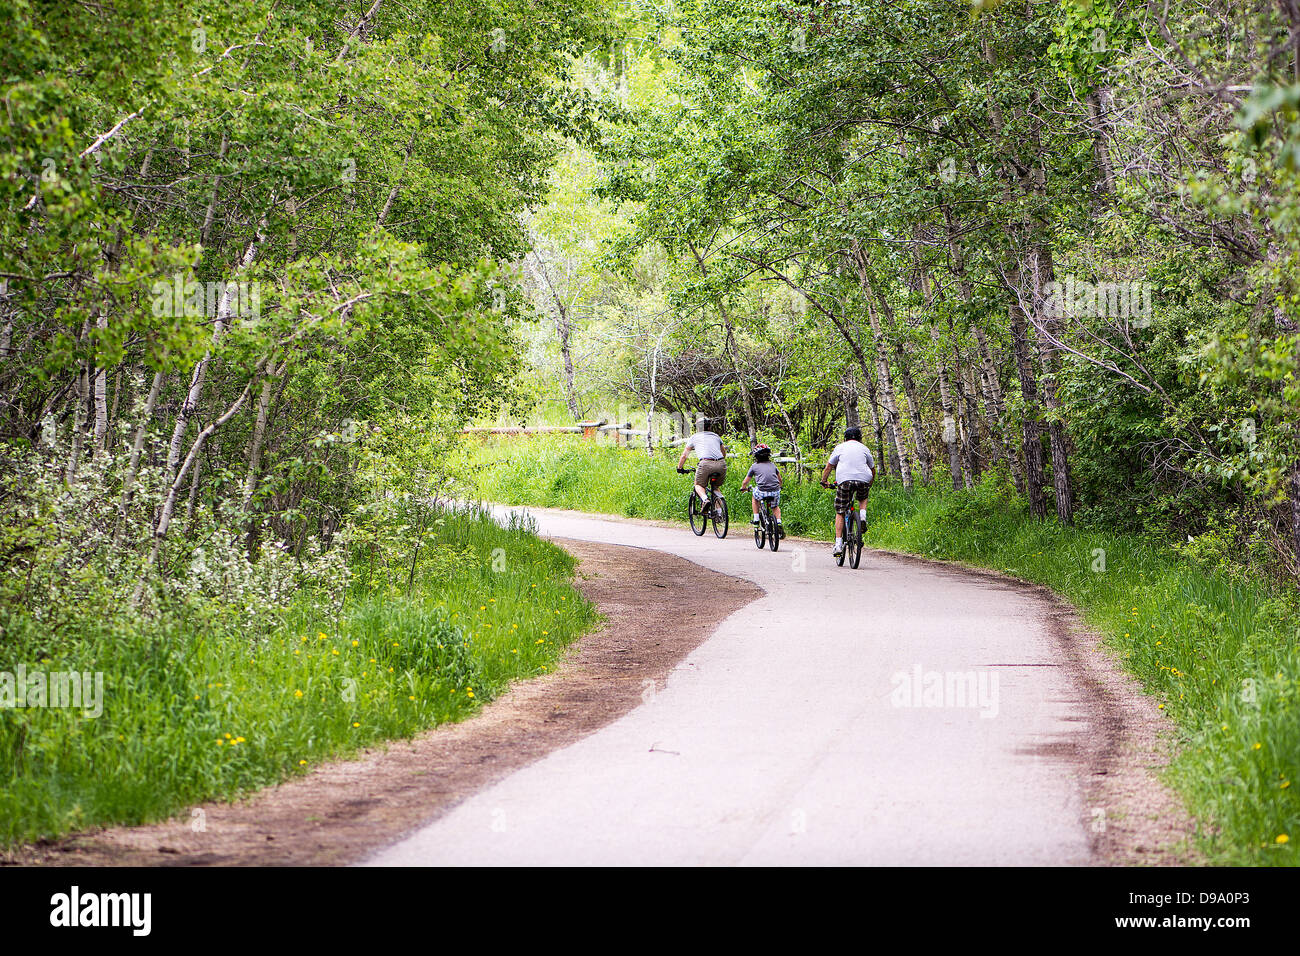 Family, values, bike, biking, path, pathway, bike path, summer, happy - Stock Image